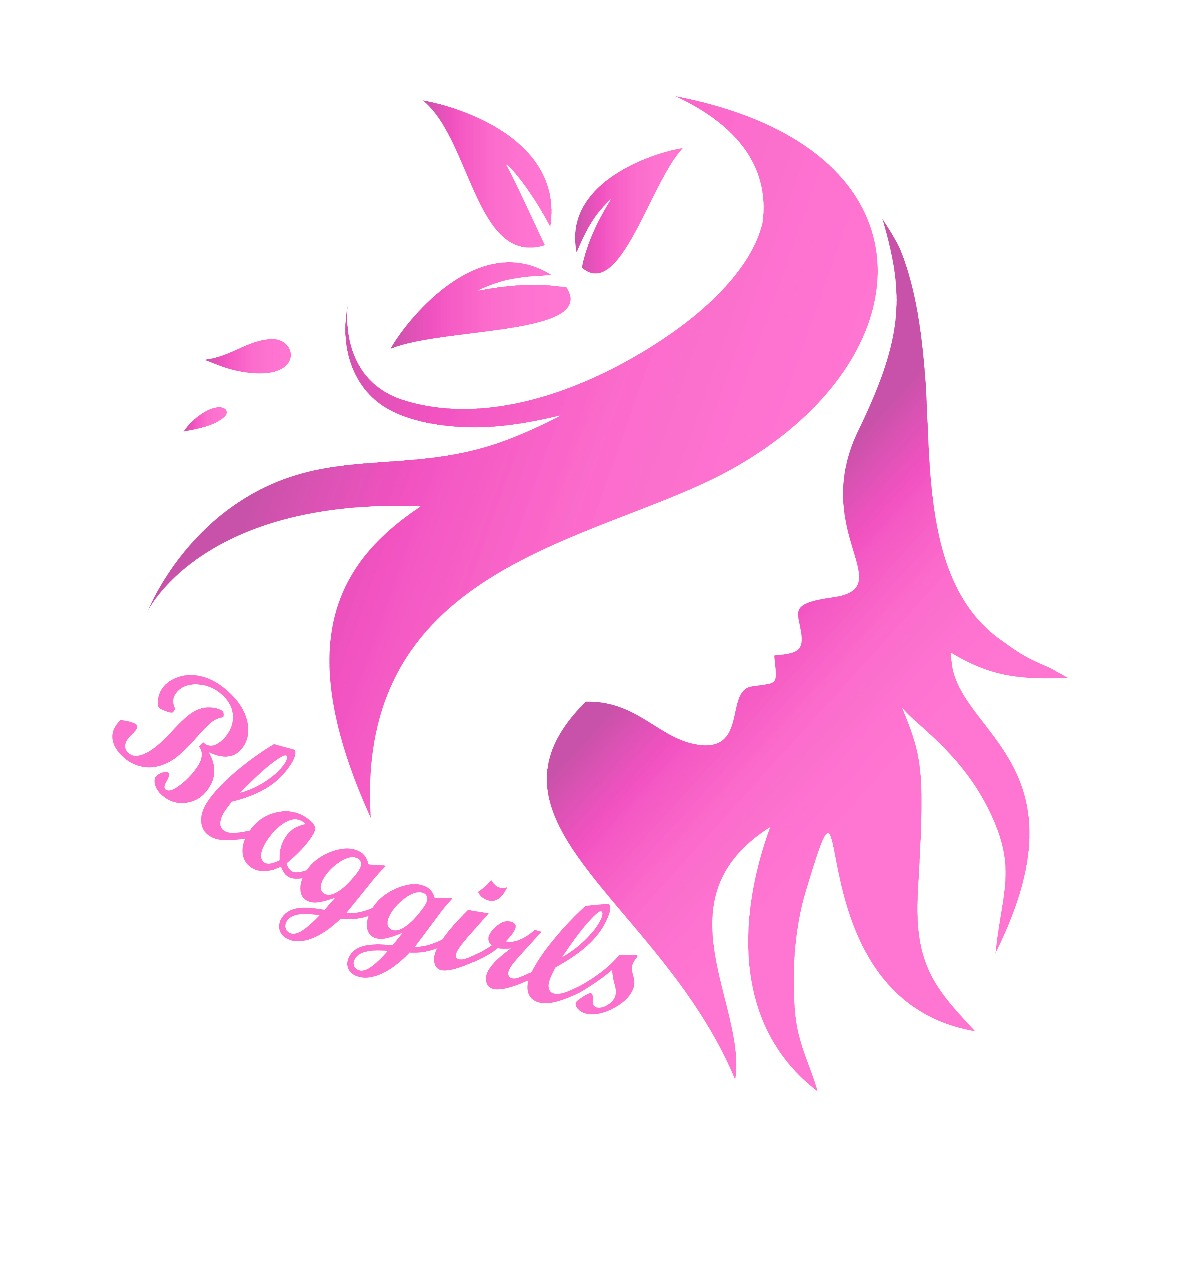 Bloggirls Official Core Team